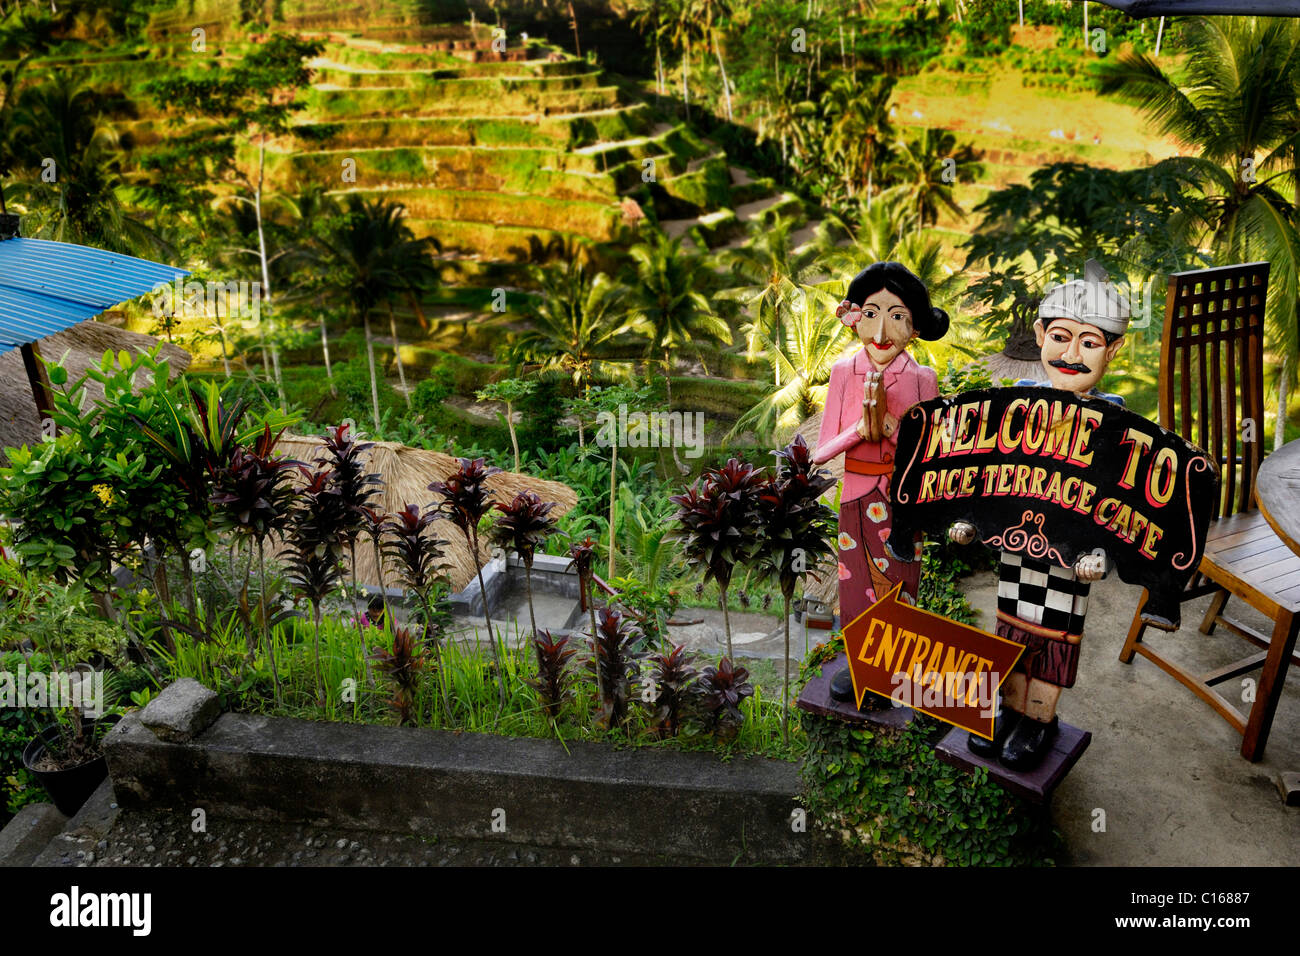 Rice terraces and advertisements for coffee near Ubud, Bali, Indonesia, Asia - Stock Image